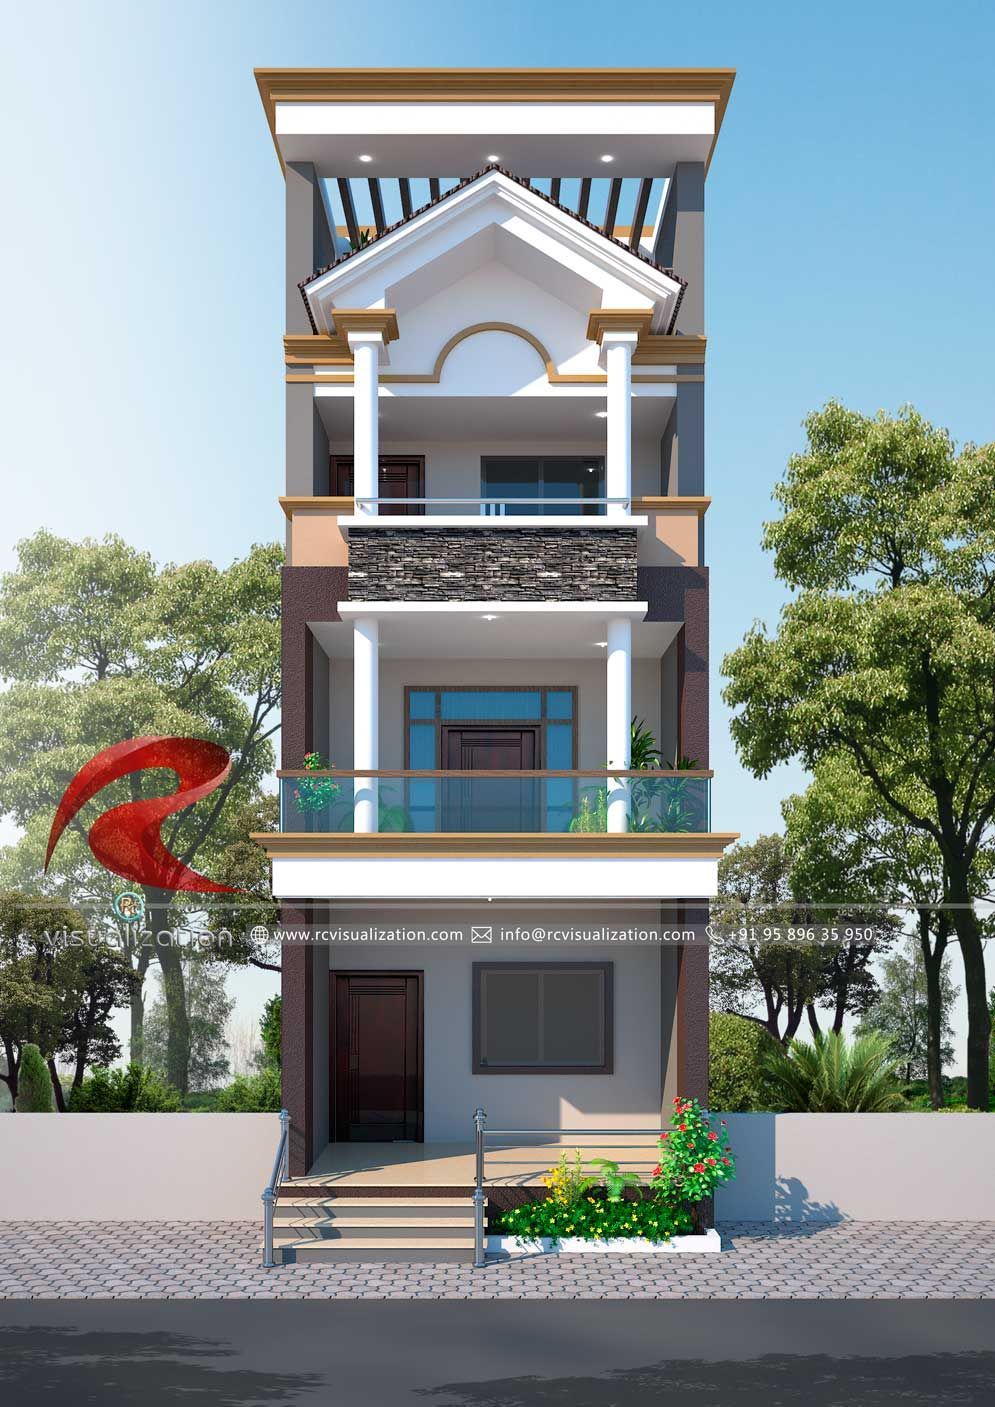 Small House Elevation Design Small House Design Exterior Narrow: RC Visualization Structural Plan And Elevation Designing